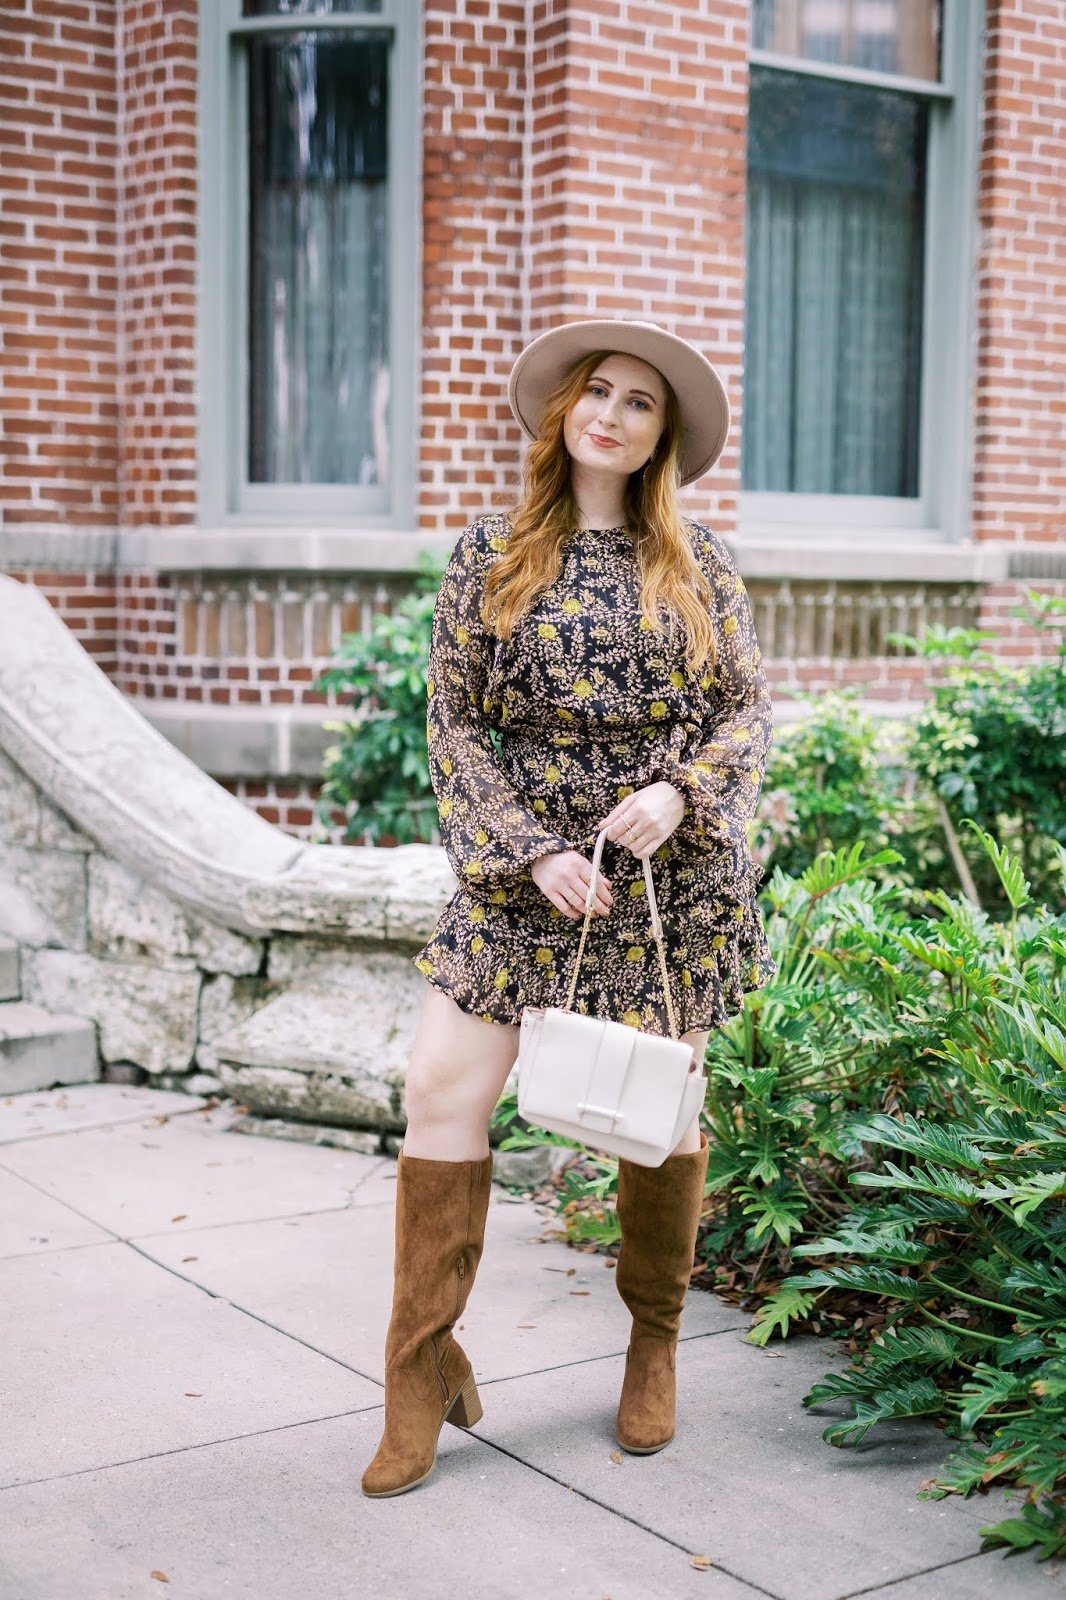 Stylish and Affordable Thanksgiving Outfit Ideas: 20 Dress Options To Wear on Thanksgiving | Affordable by Amanda